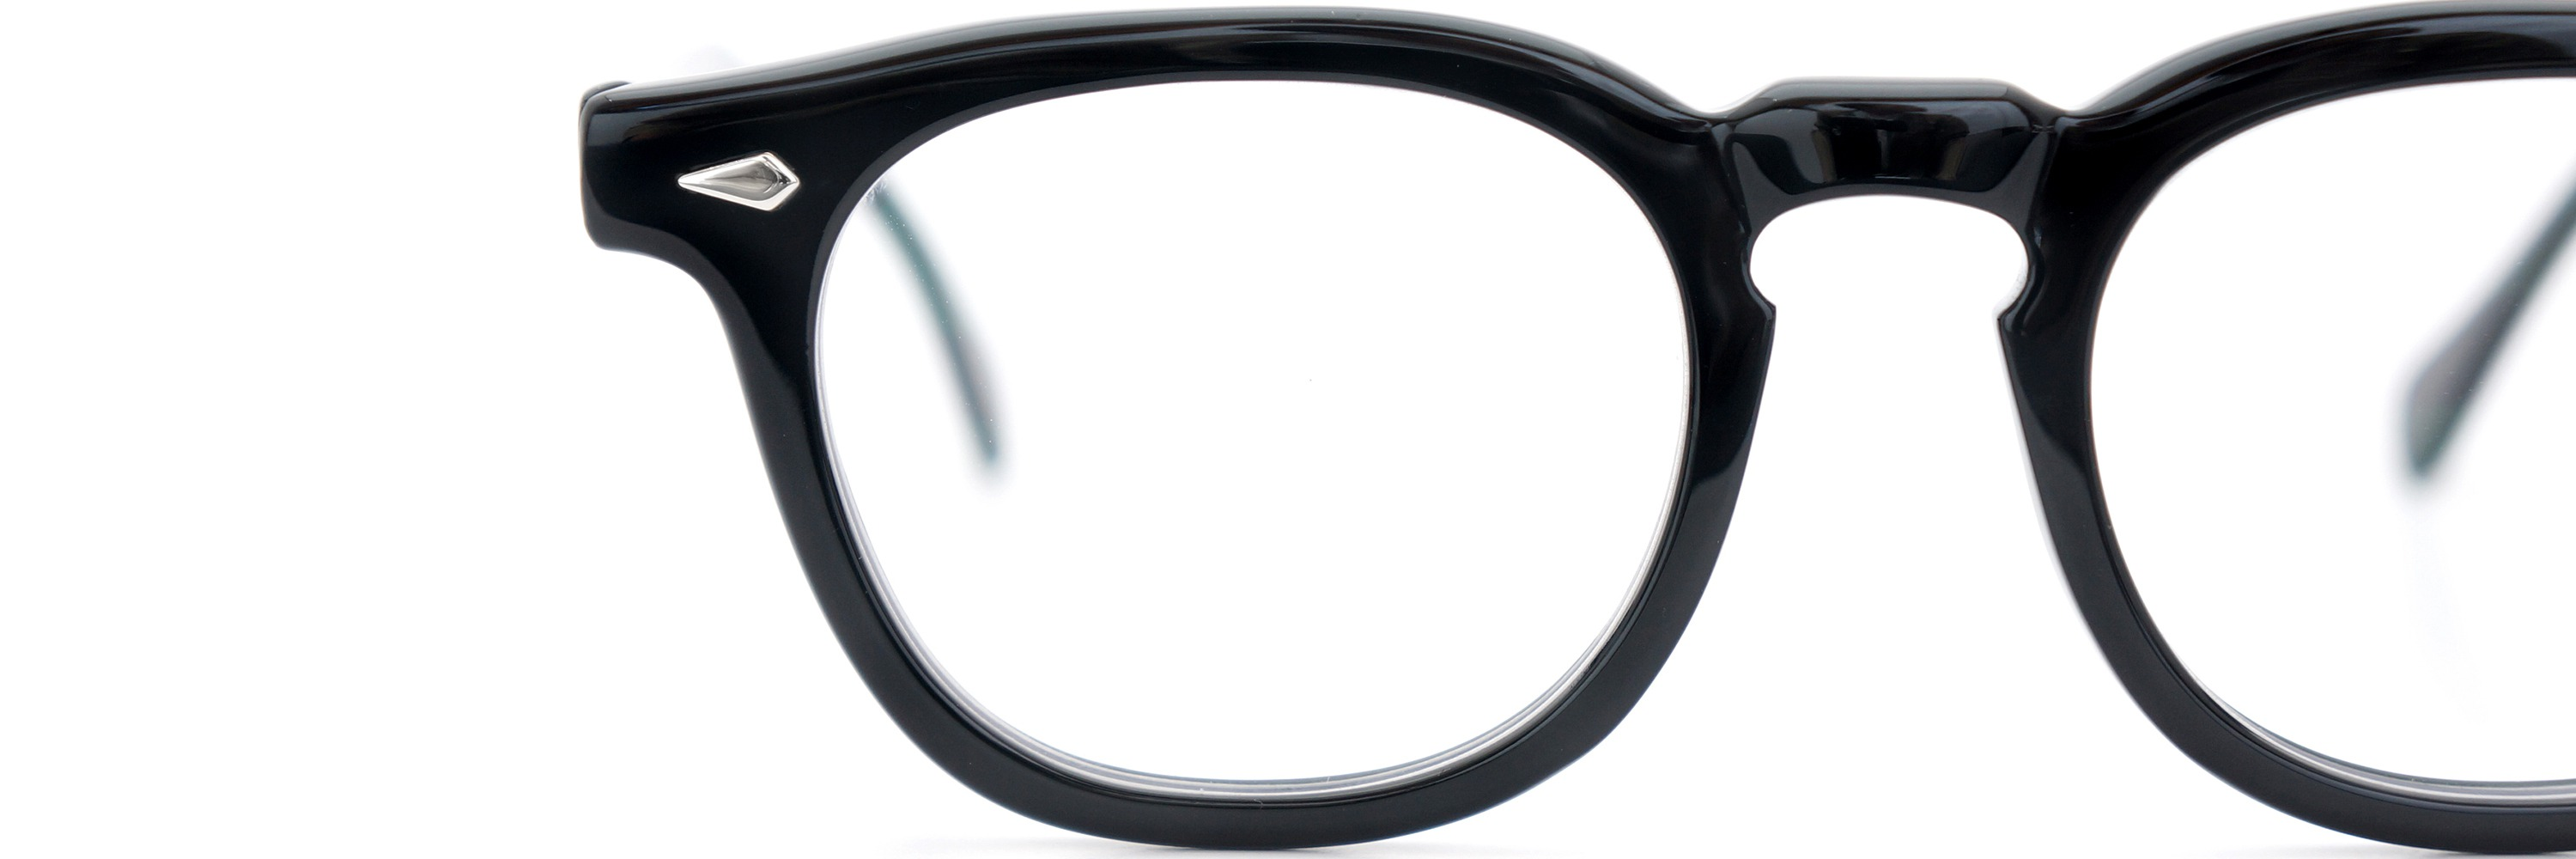 The Spectacle メガネ 1950s-70s TART OPTICAL ARNEL(FRAME USA) BLACK 48-22 イメージ